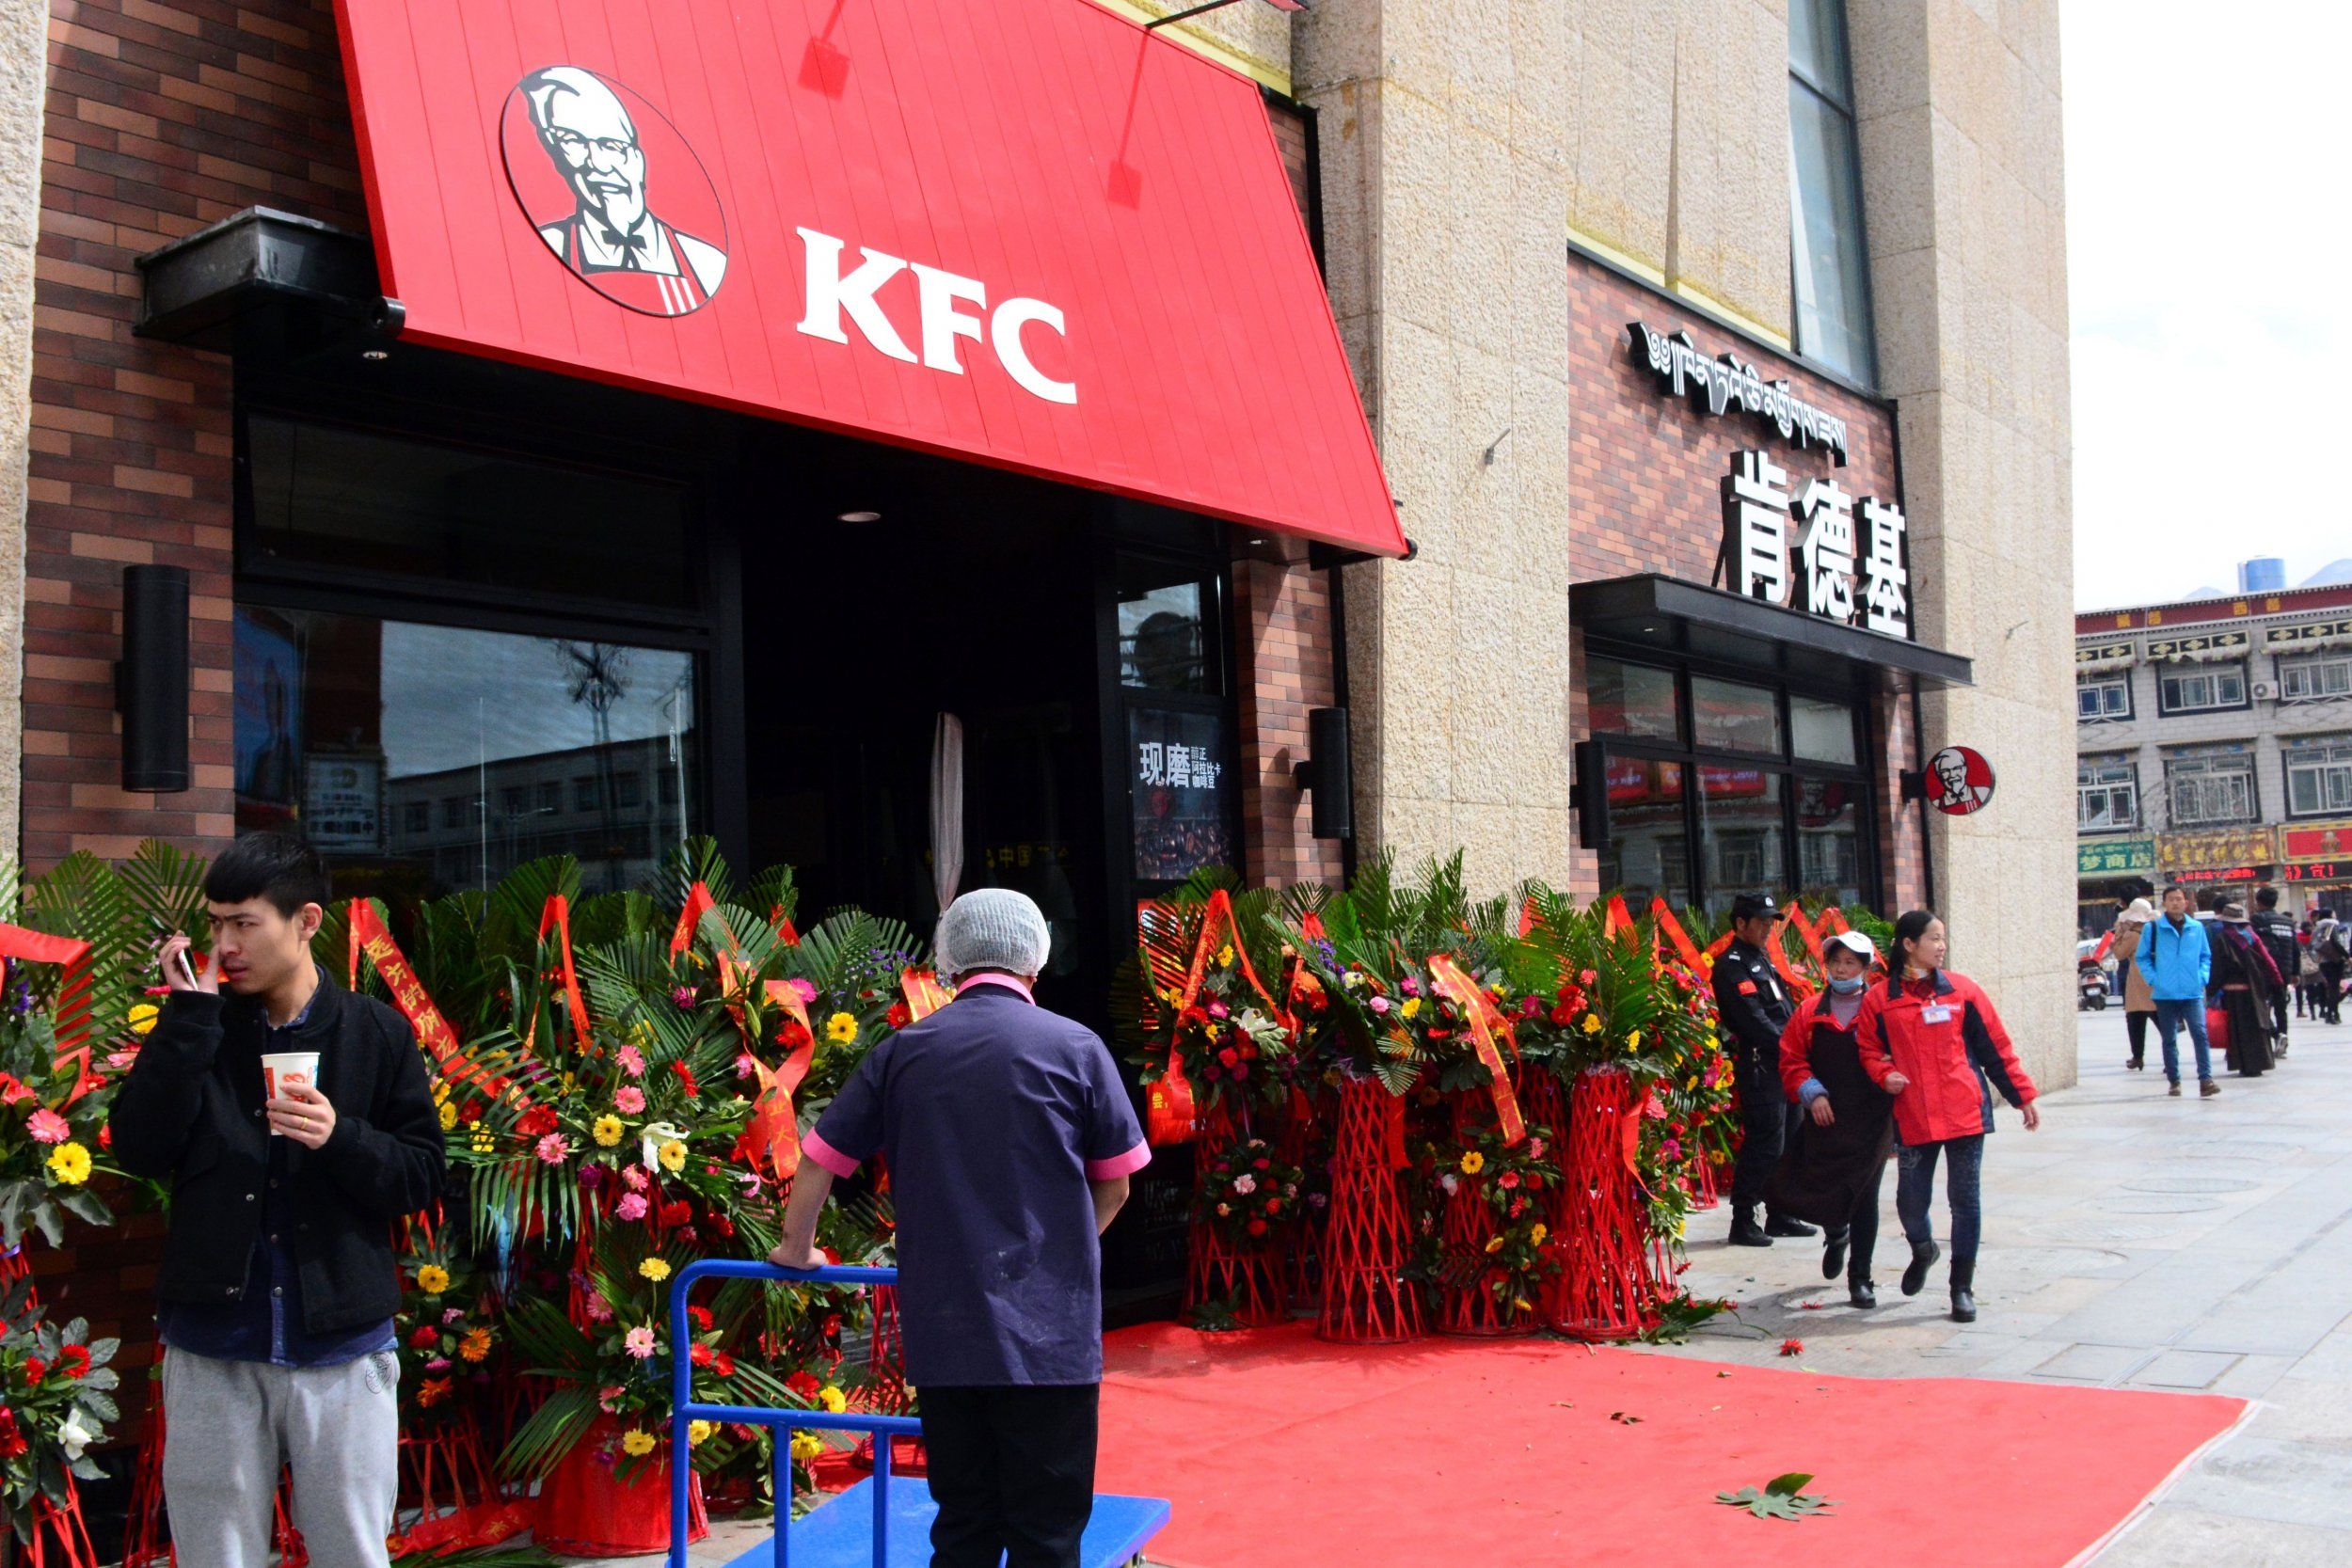 A KFC branch in Lhasa, Tibet.